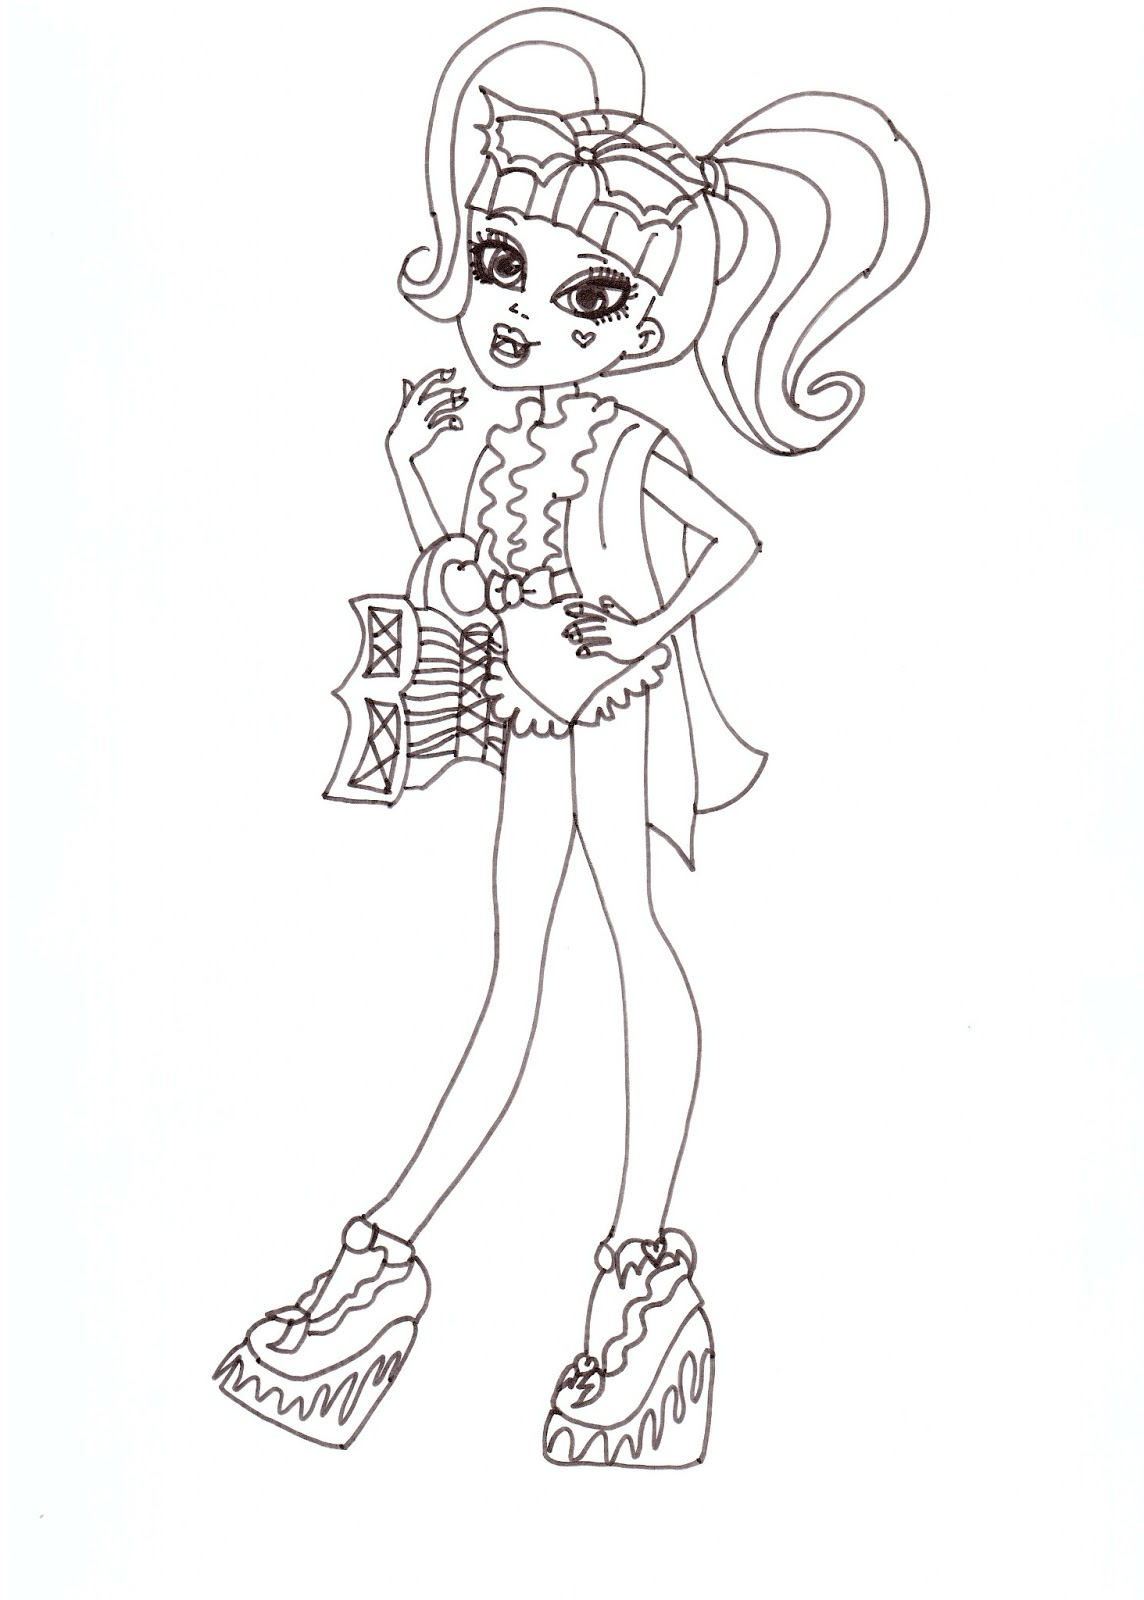 Draculaura Swim Class Coloring Sheet CLICK HERE TO PRINT Free Printable Monster High